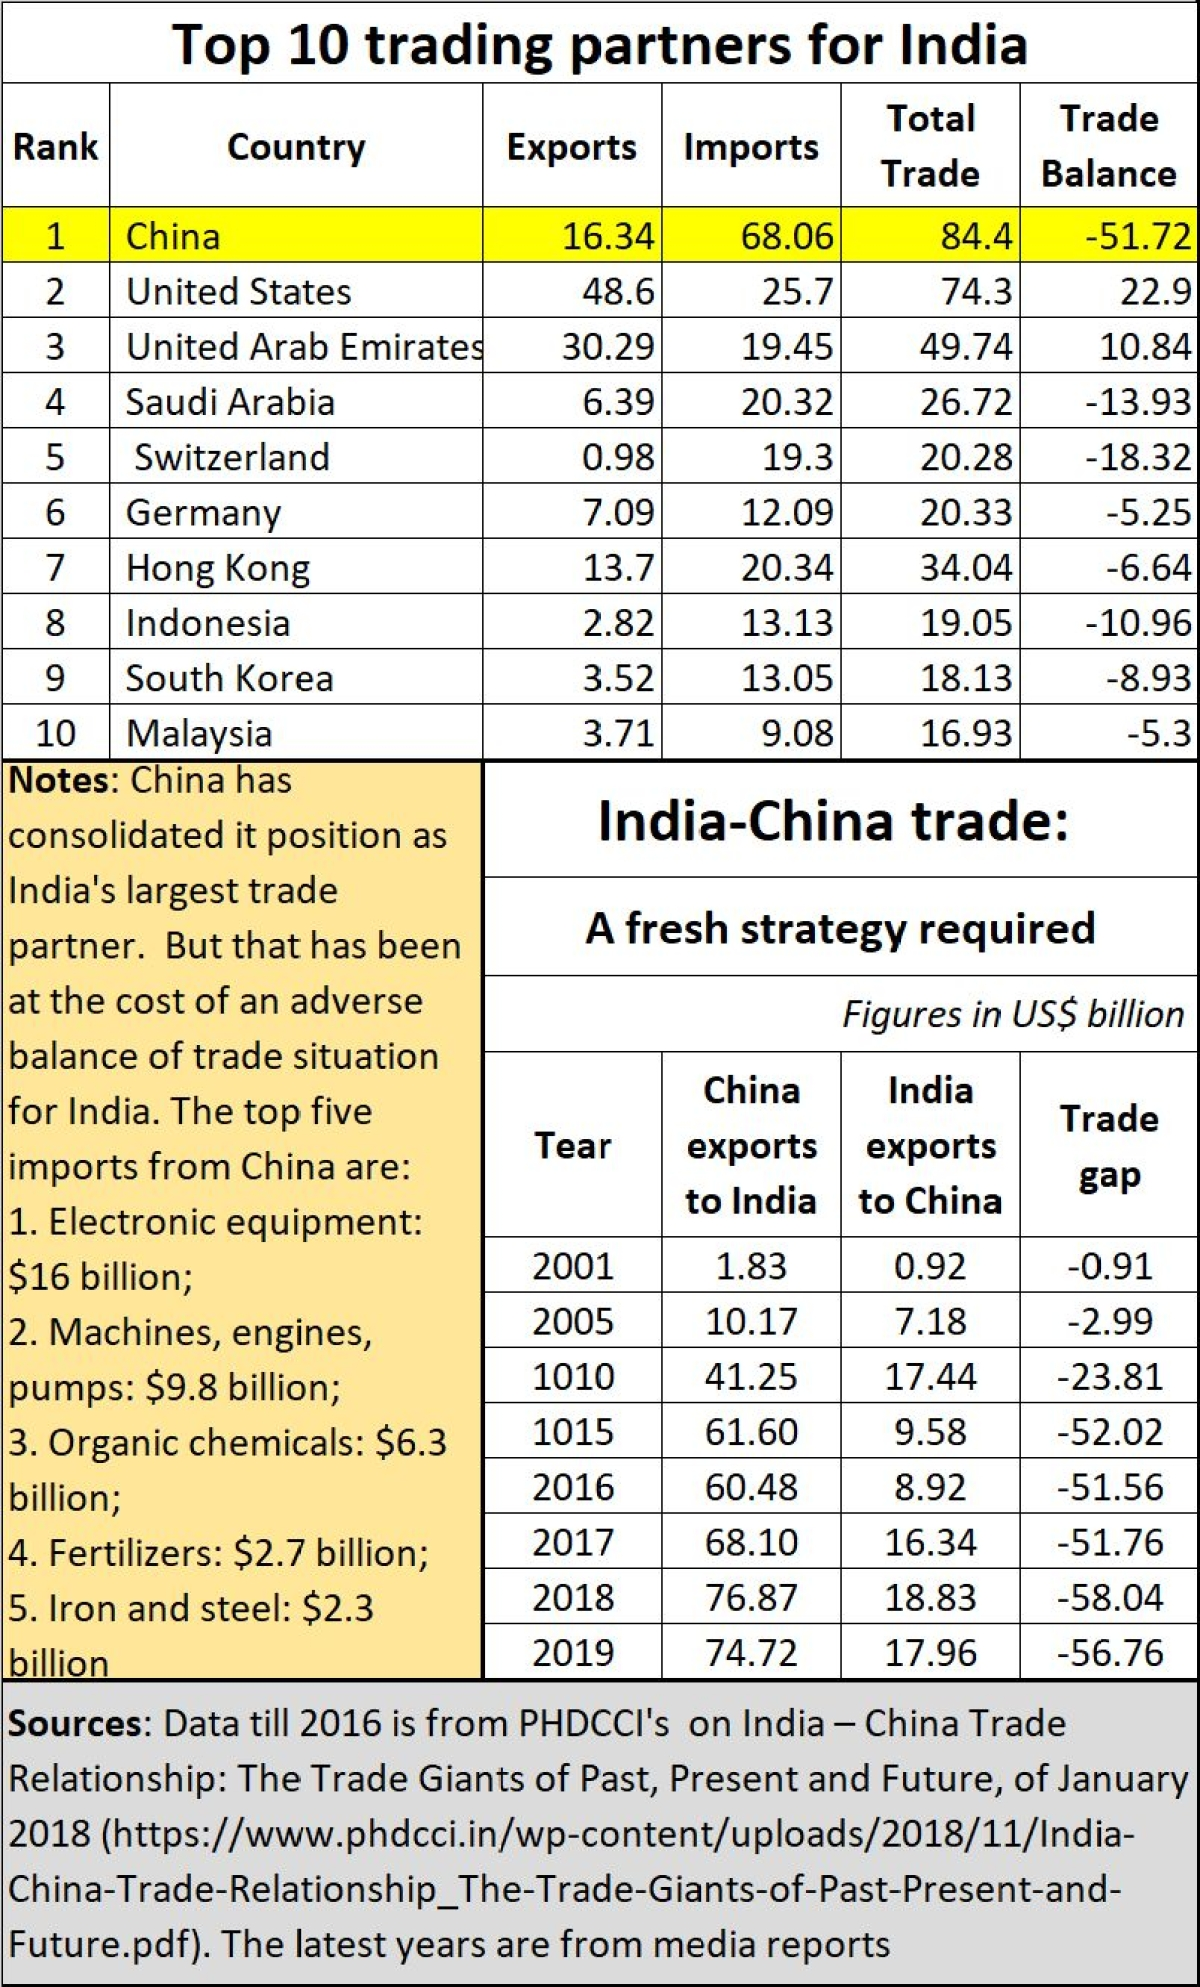 Strategy for healthier India-China trade